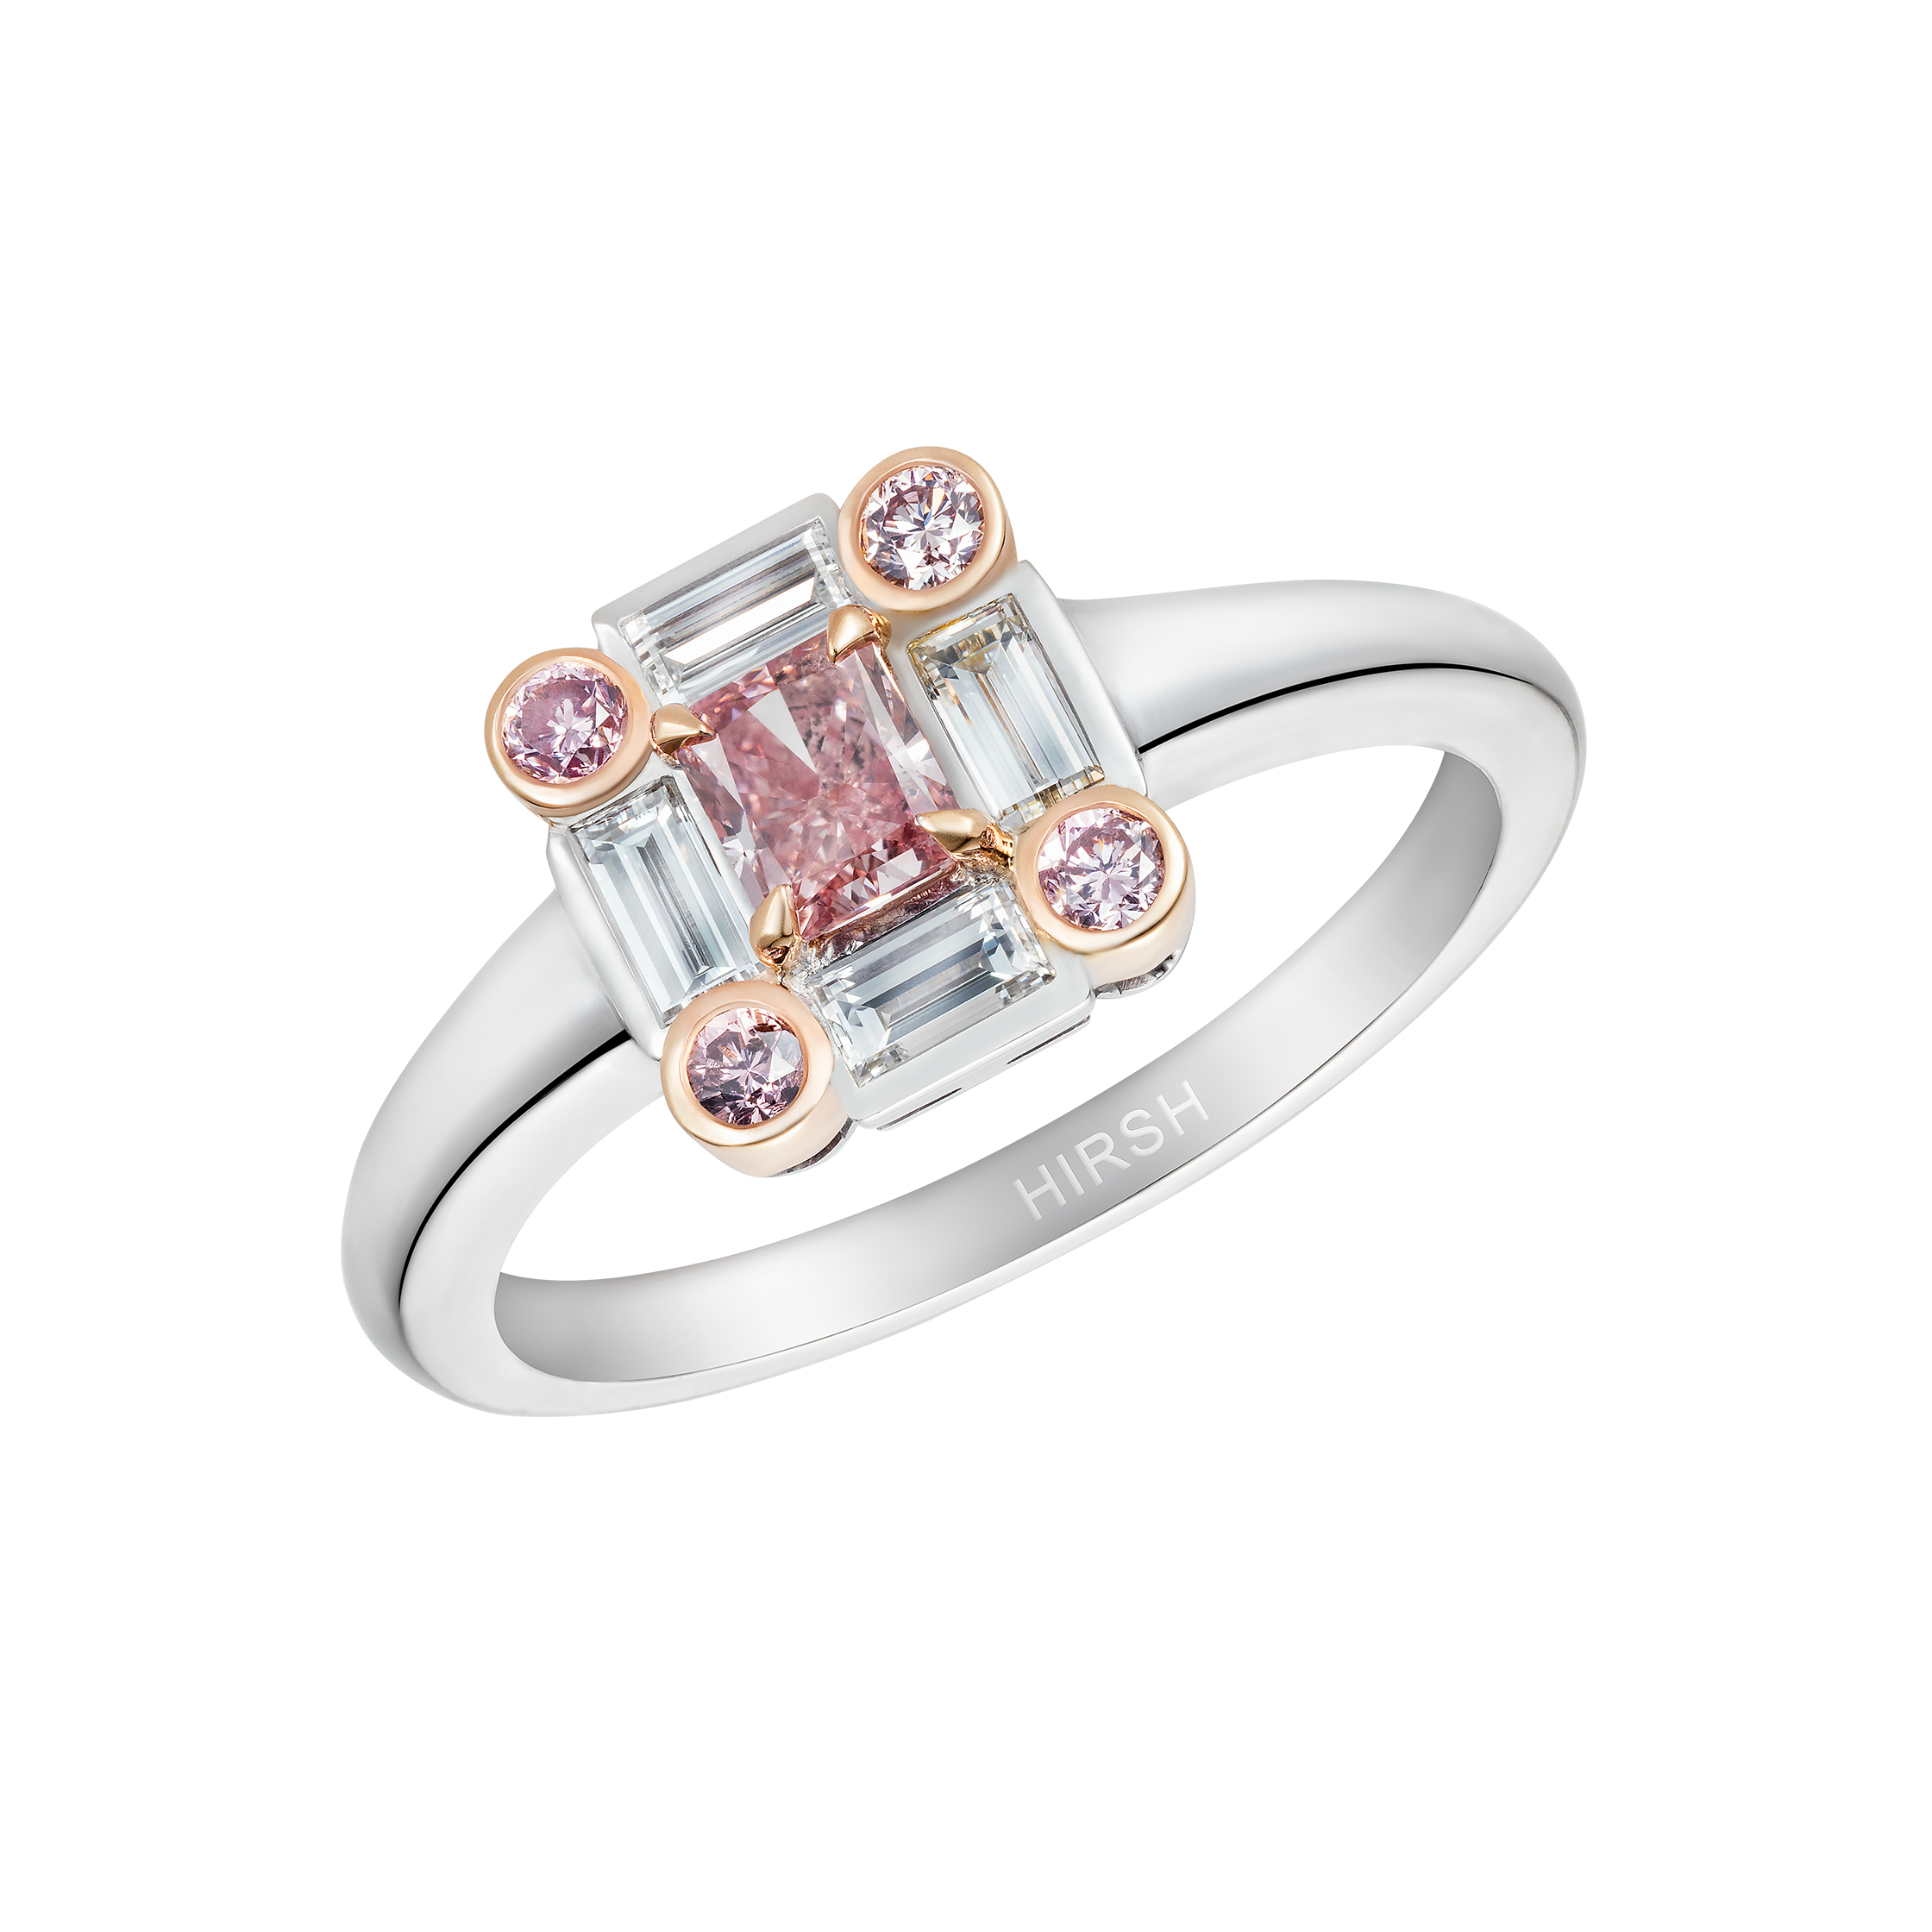 vert diamonds white we stewart pink gold martha weddings jewellery colored harry engagement love kotlar rings